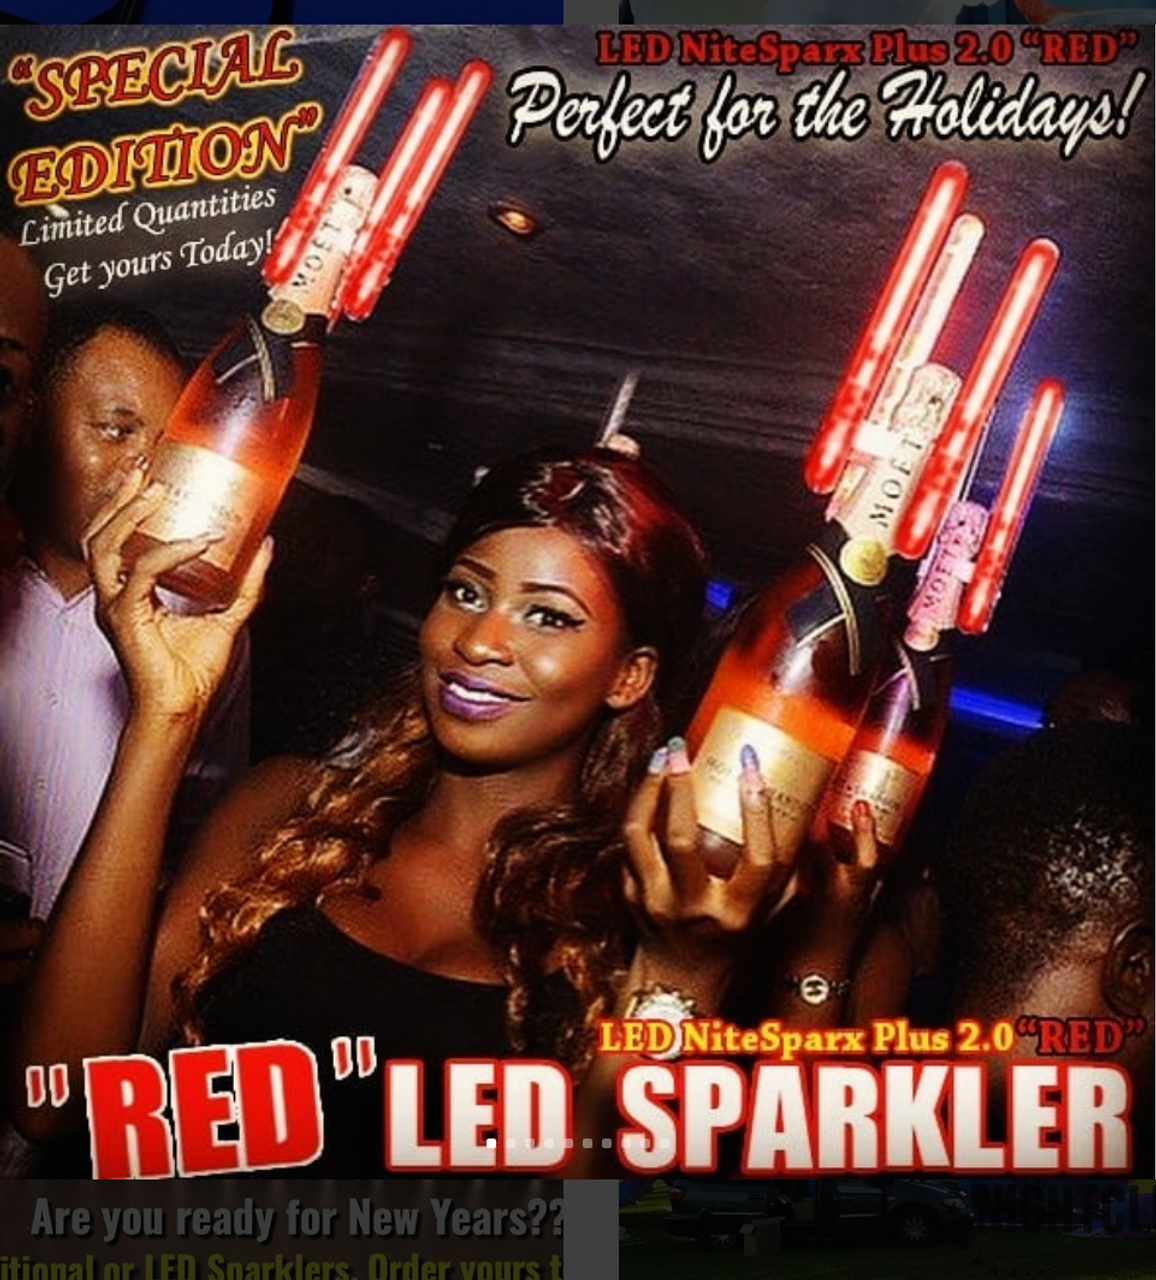 #LED #Nitesparx #Plus #Alternative #Safe #electronic #Sparkler #Red #Sparx #Flameless #LEDSparkler #NYE2018